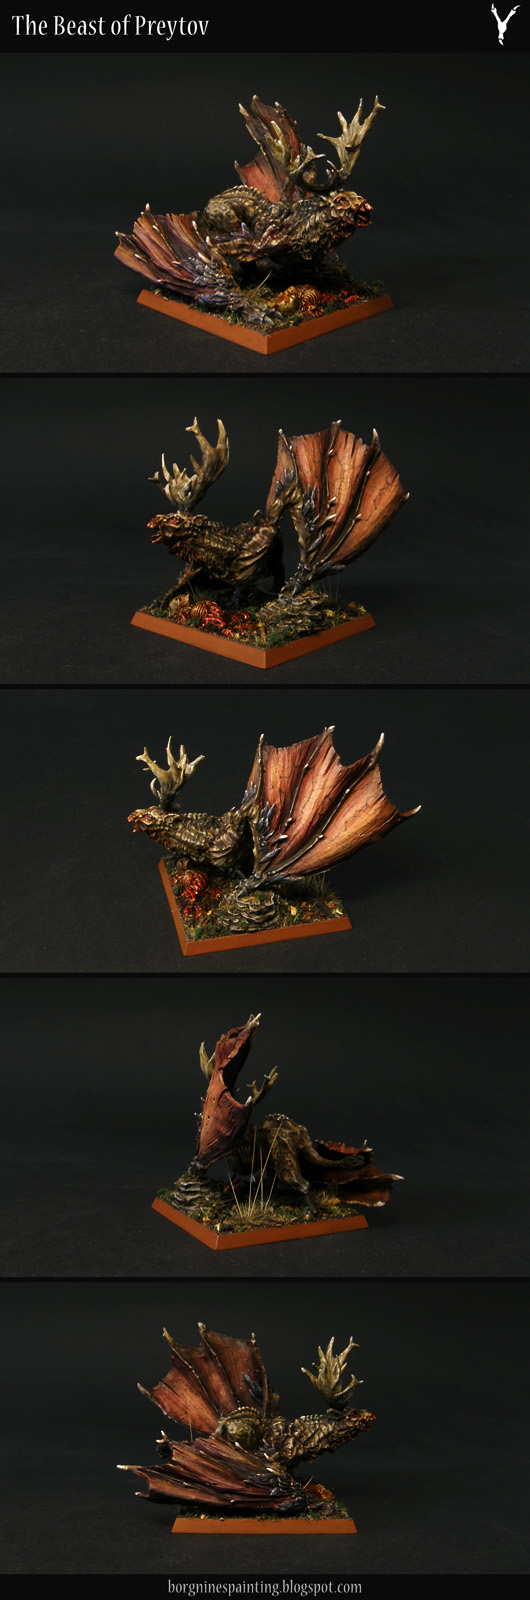 Preyton from Forge World, painted in dark and muted colors - a miniature winger monster usable in Warhammer Fantasy Battle (WFB) or Age of Sigmar (AoS).